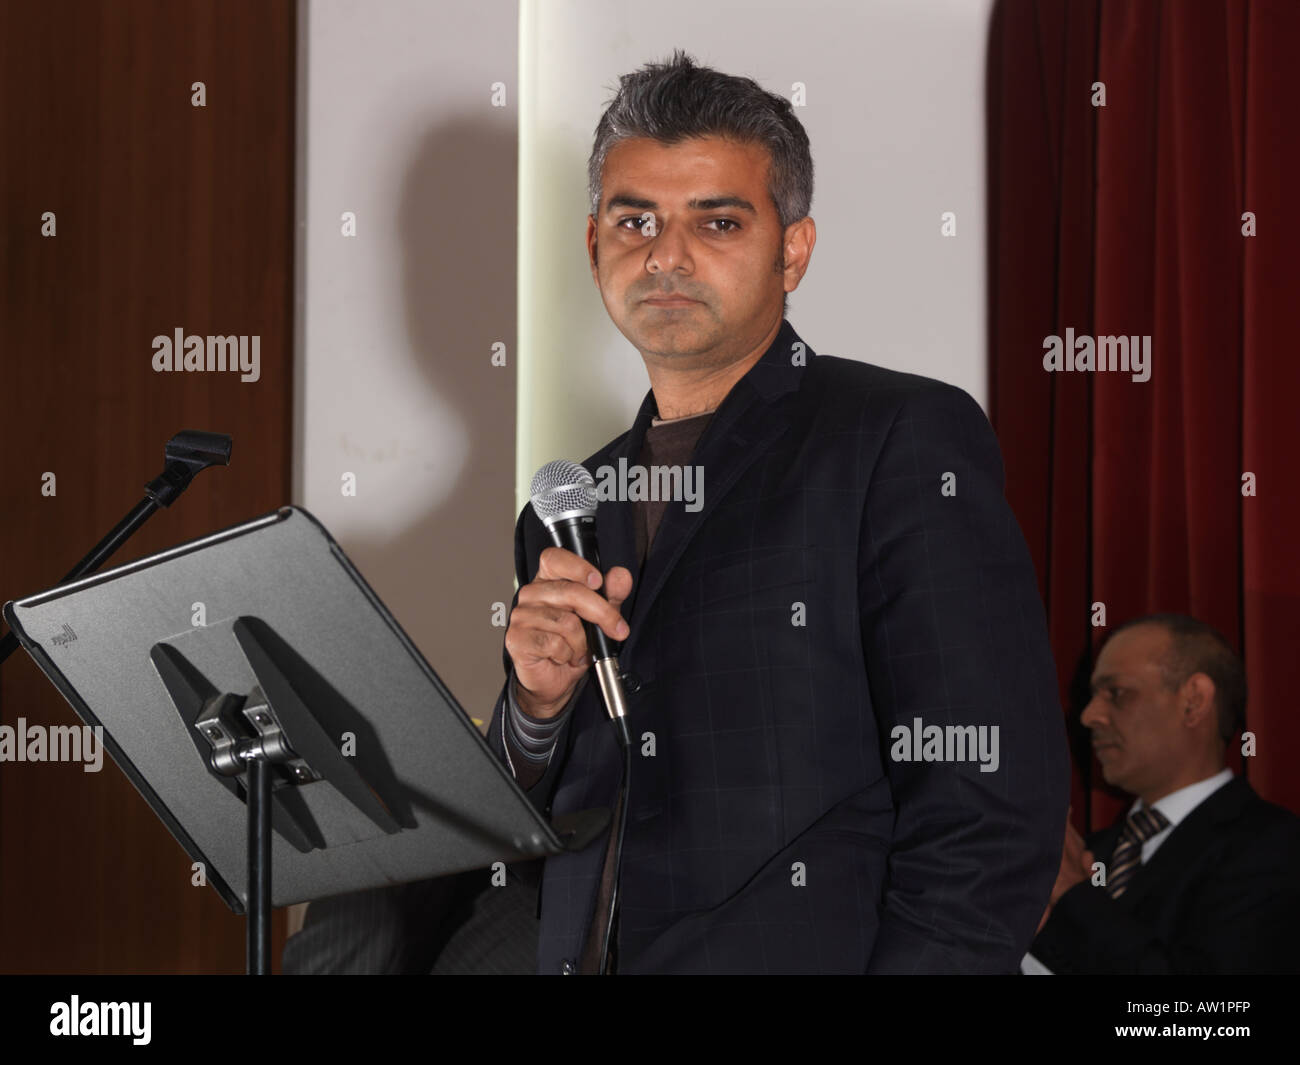 Diwali Wandswoth Town Hall London Sadiq Khan MP for Tooting - Stock Image